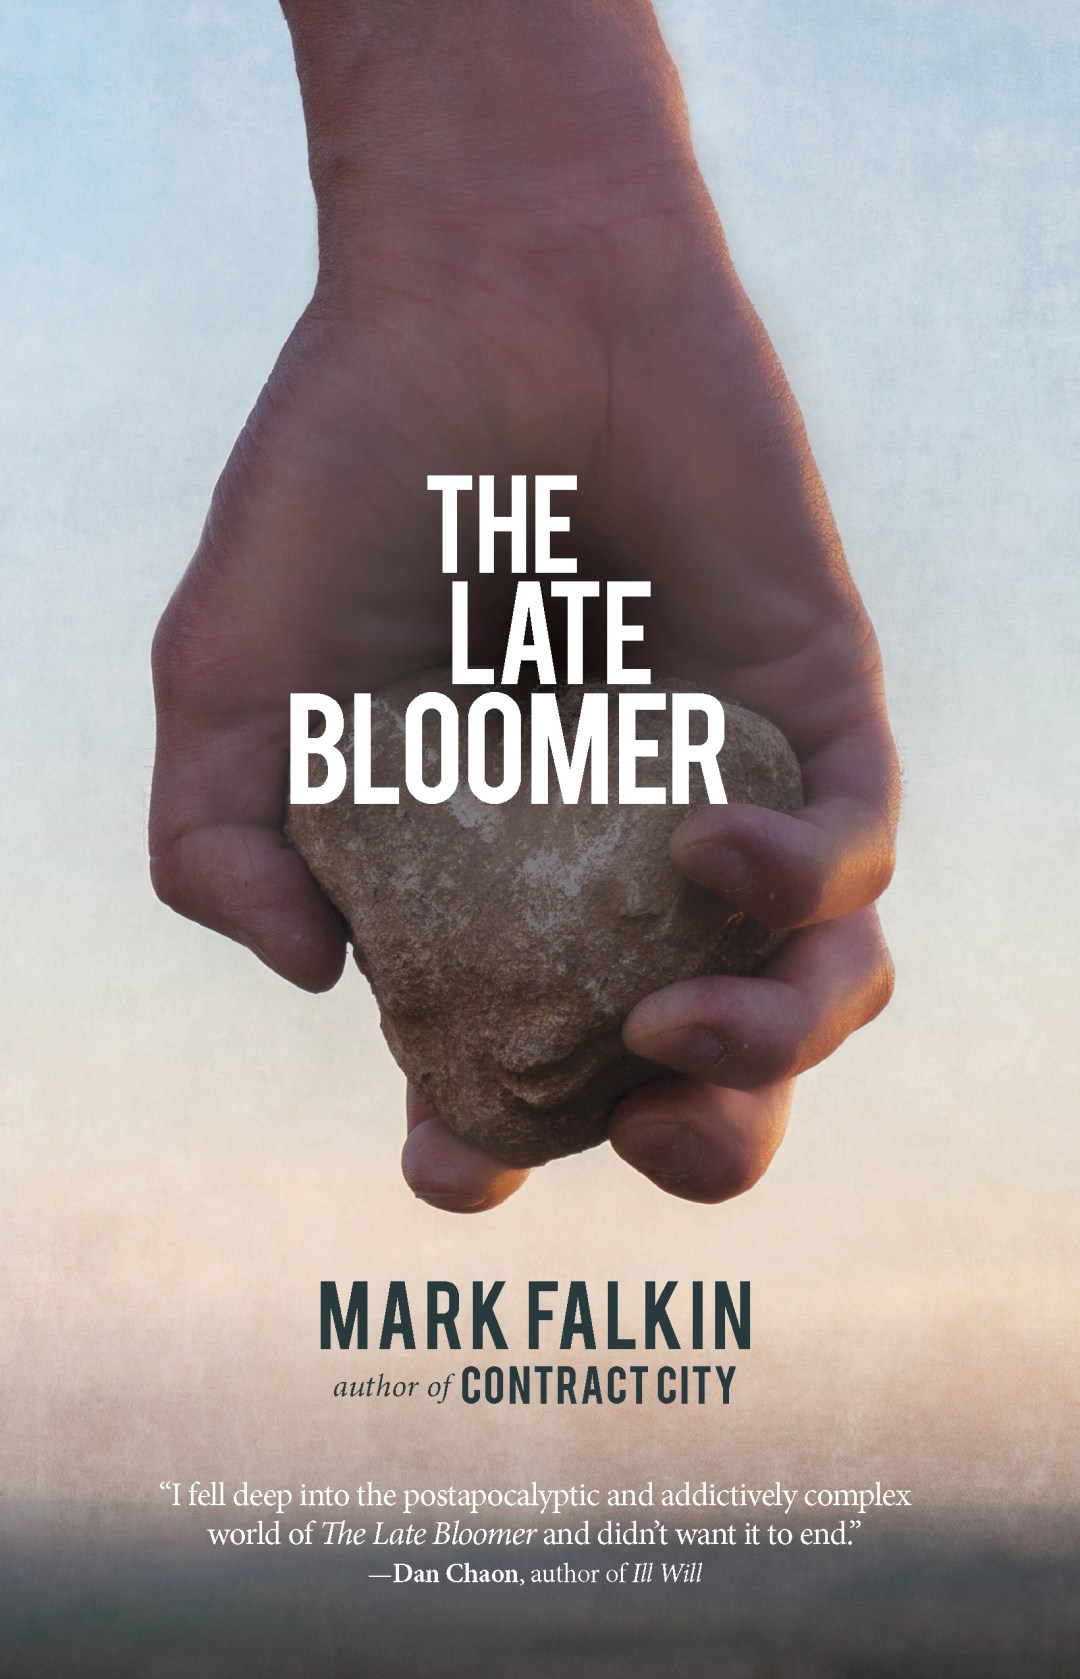 #Excerpt from The Late Bloomer by Mark Falkin @MarkFalkin